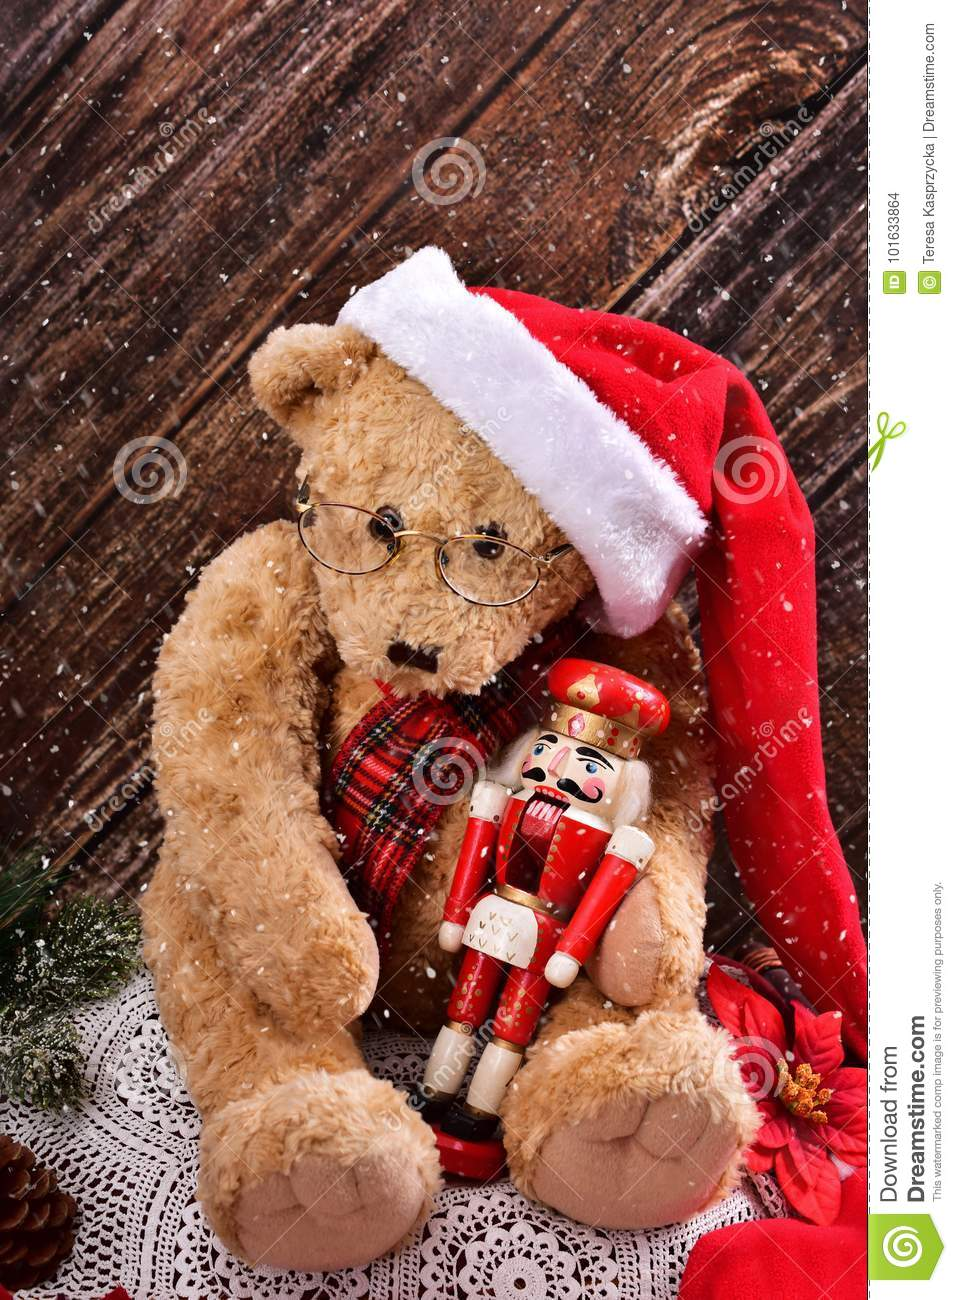 Christmas Teddy Bear With Vintage Nutcracker Stock Photo Image Of Holiday Colorful 101633864